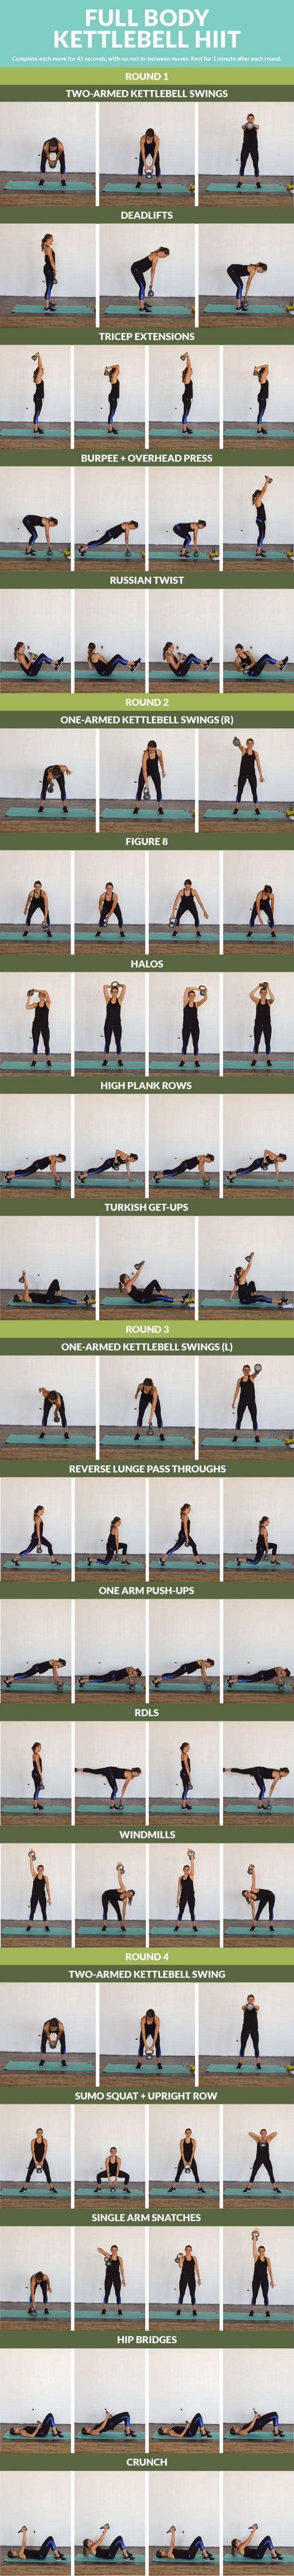 Strengthen your entire body with this 20 minute cardio and strength kettlebell combo! Mix up your regular workout routine with these fun, yet effective kettlebell exercises. You'll tone multiple mu… #kettlebells